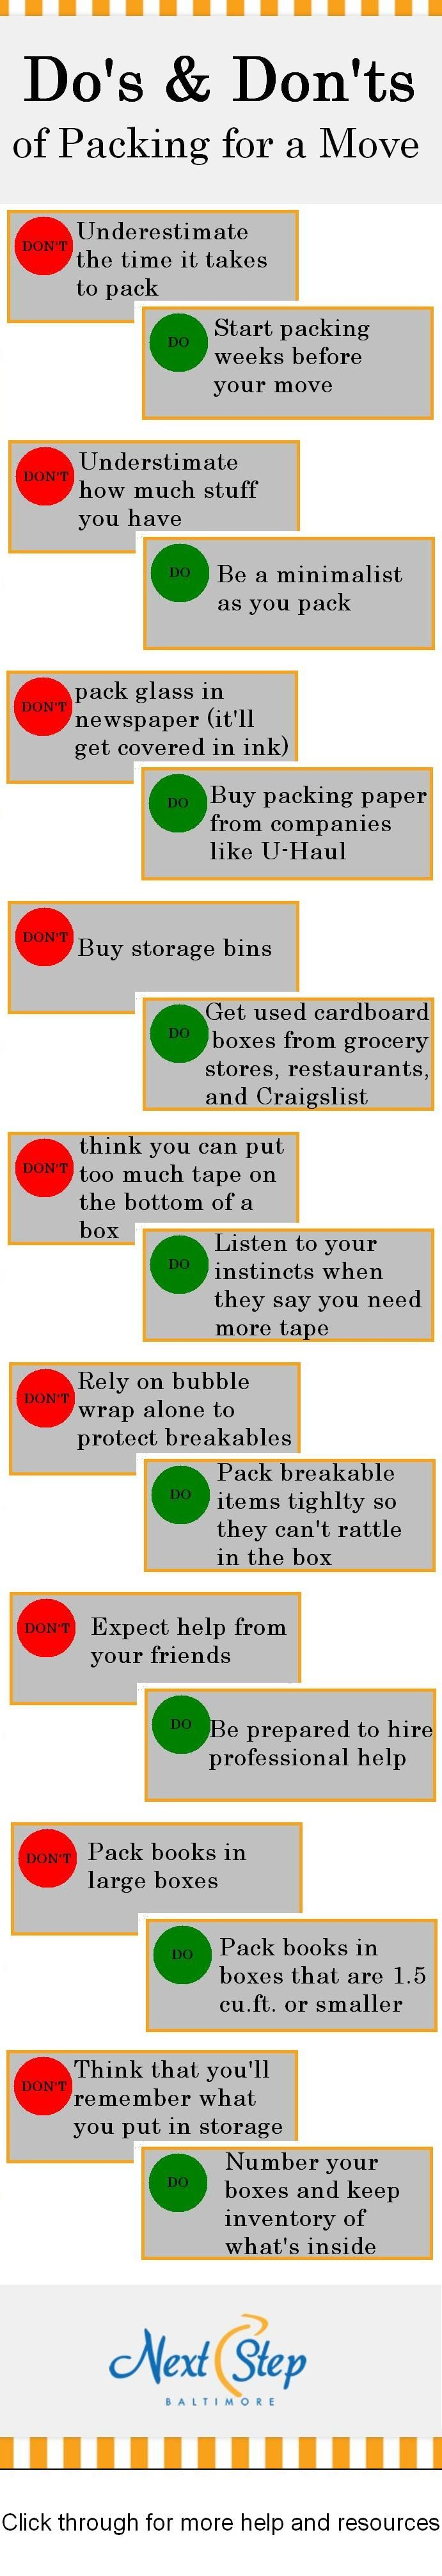 Here's our Do's & Don'ts Checklist for Packing and Moving!